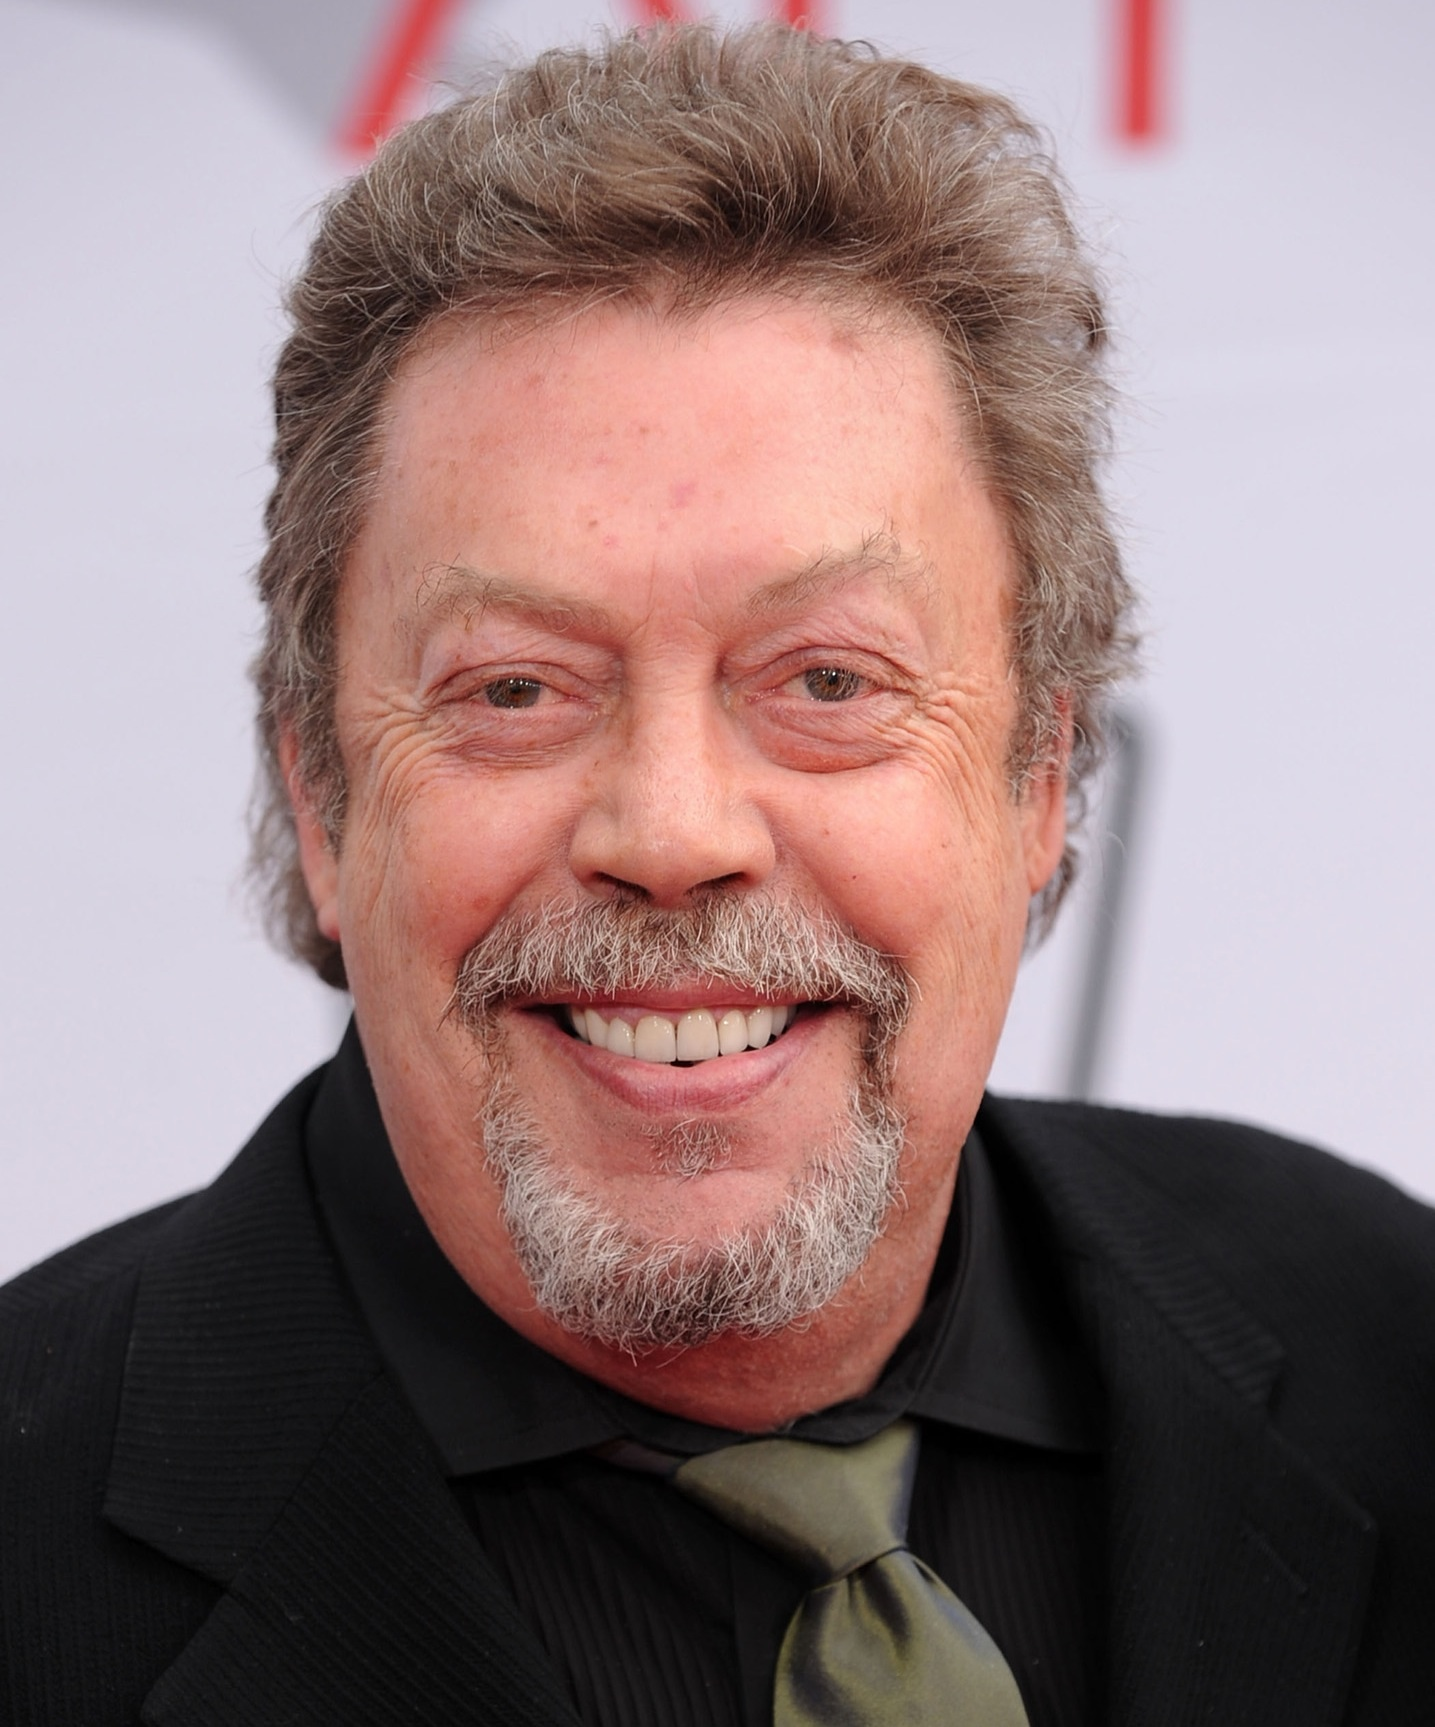 Tim Curry (born 1946) nudes (38 photo), Sexy, Cleavage, Selfie, swimsuit 2018